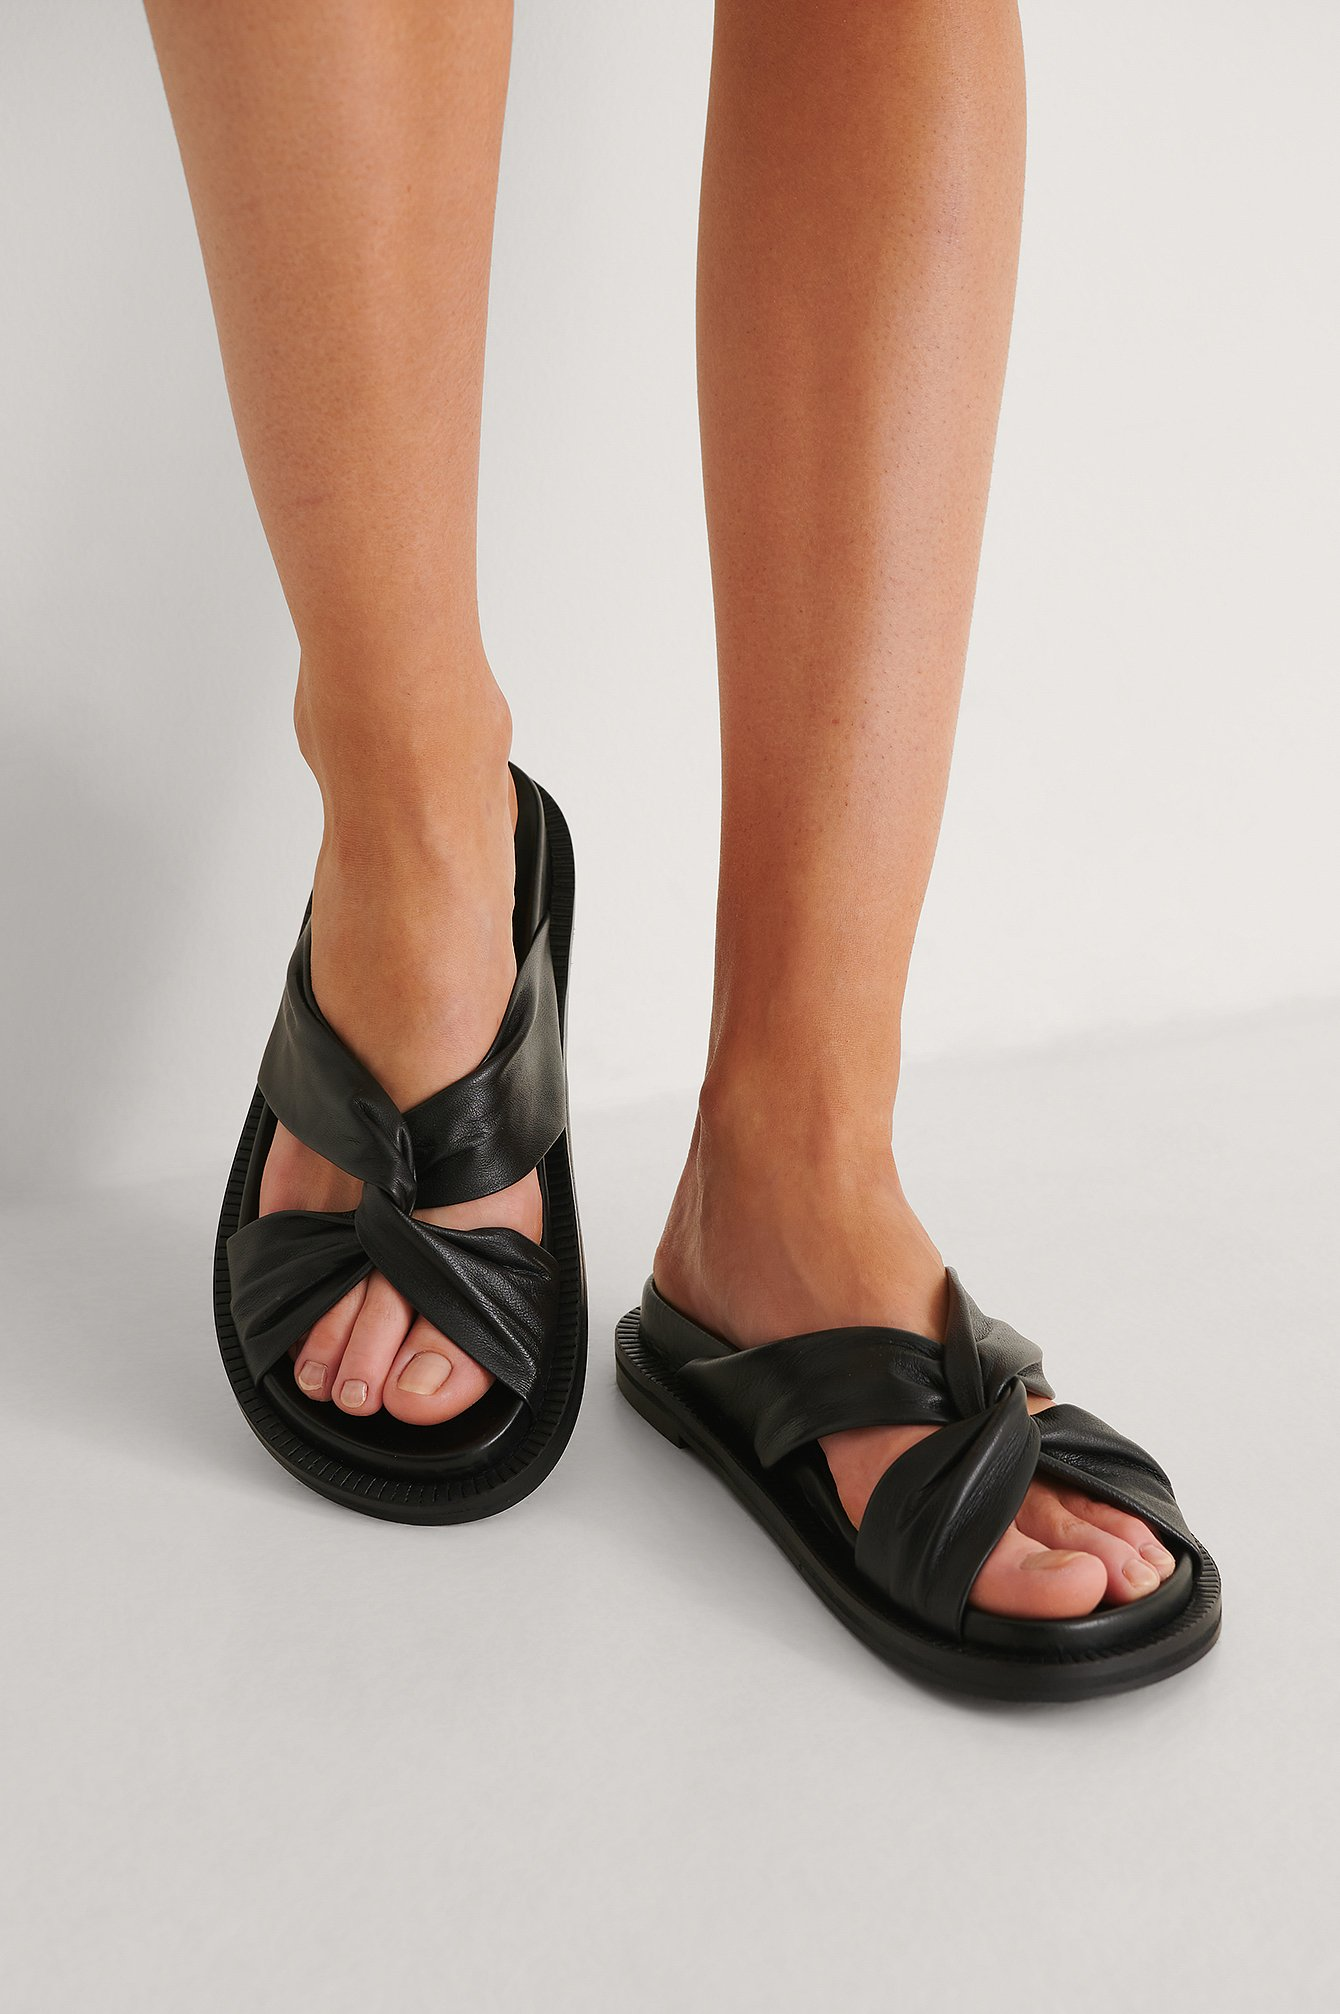 Twisted Leather Slip Ins $71.95